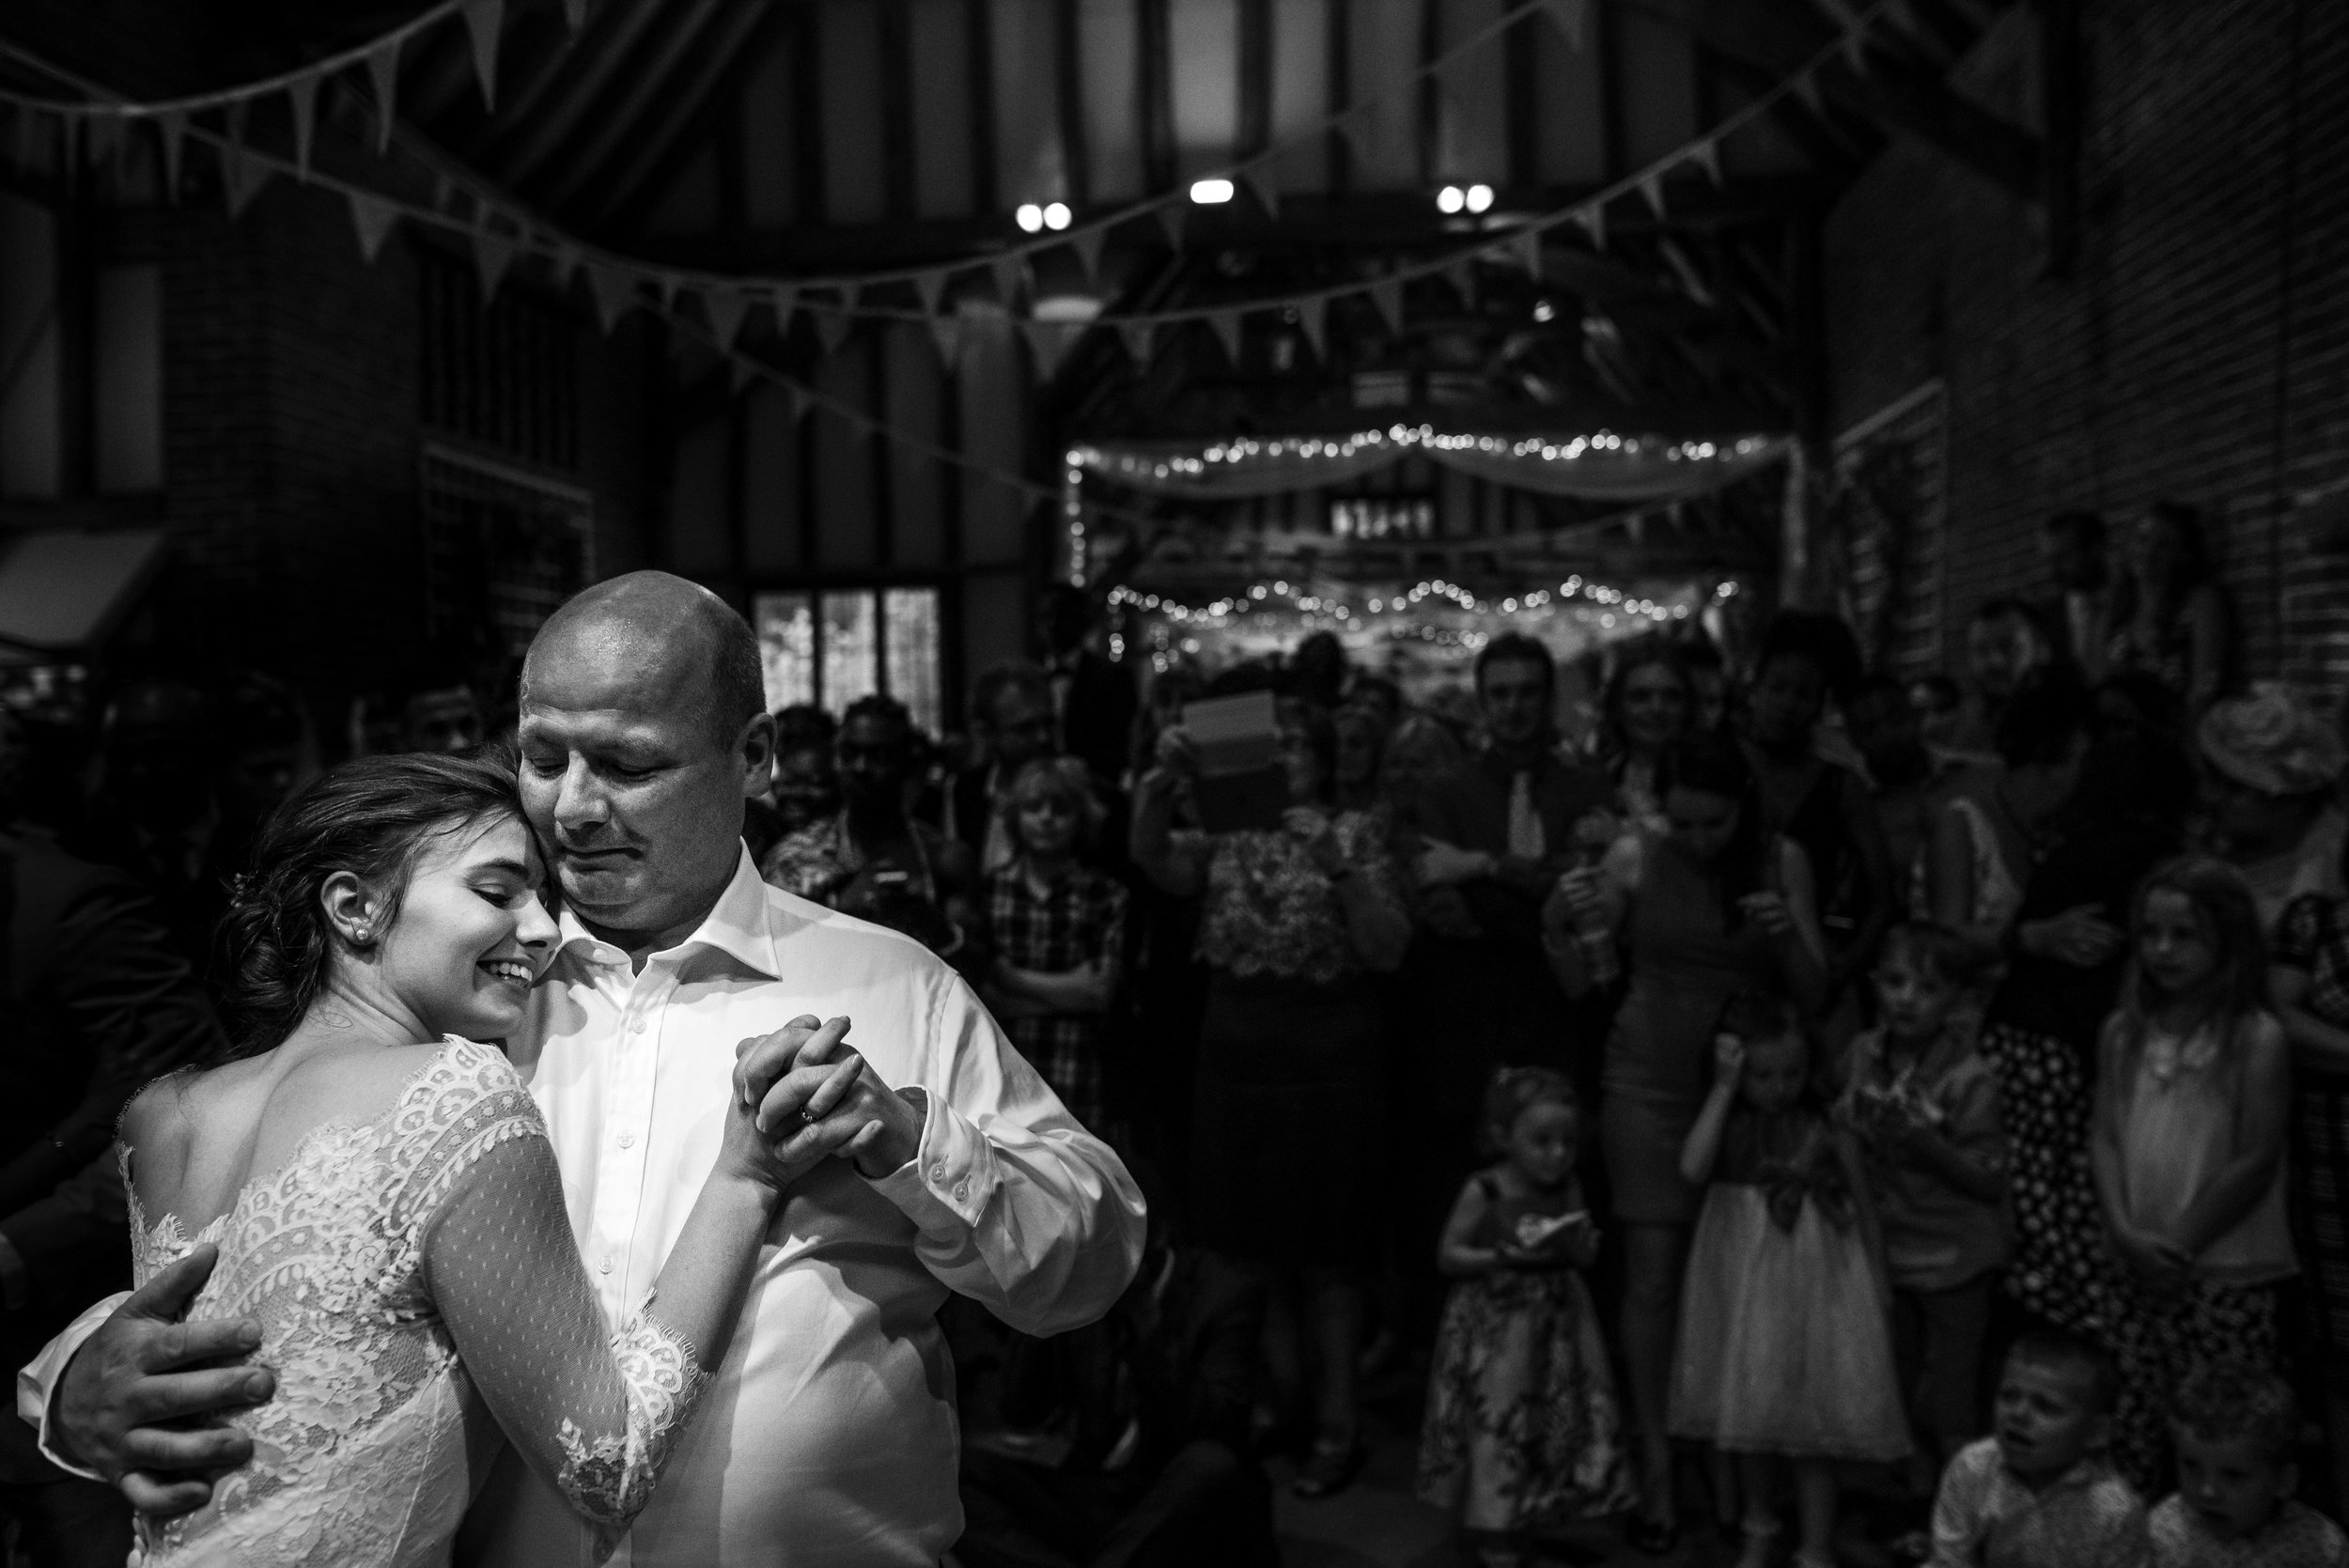 Haughley Park Barn Wedding Photography - Megan & Myles (20).jpg